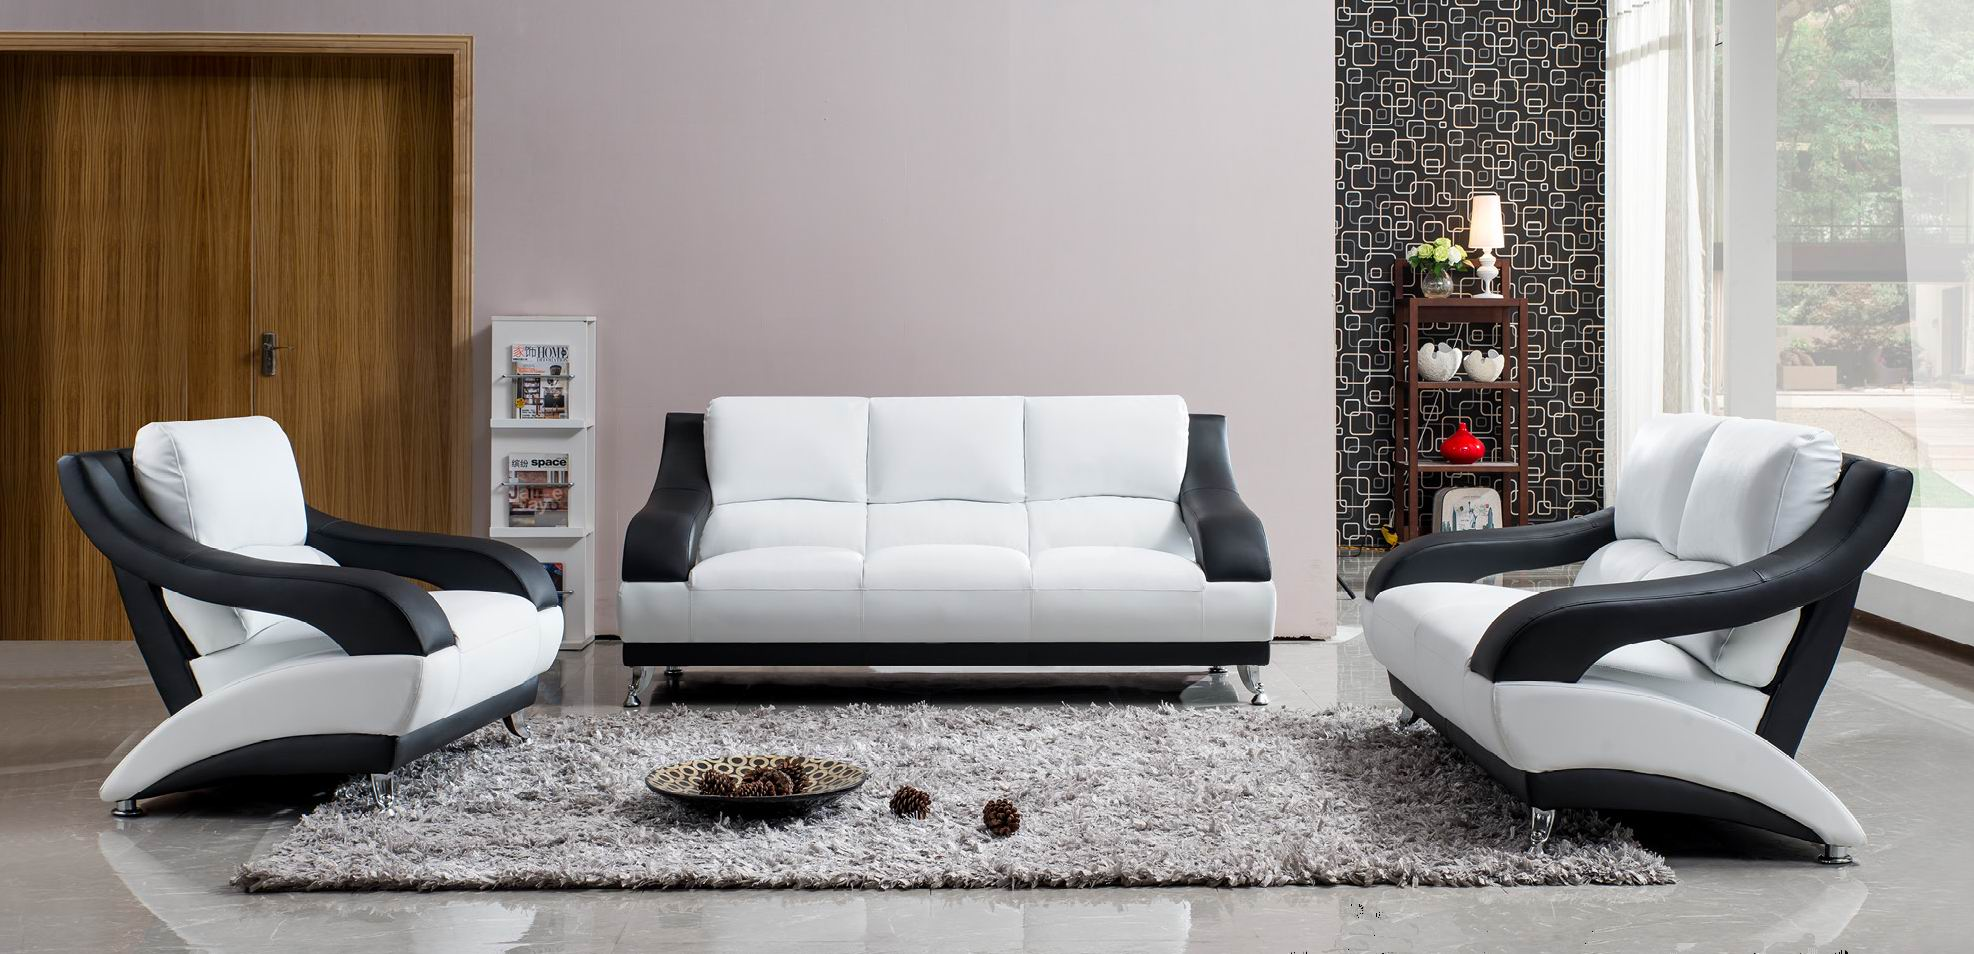 Phenomenal White Leather Sofa Set With Black Accents Cjindustries Chair Design For Home Cjindustriesco